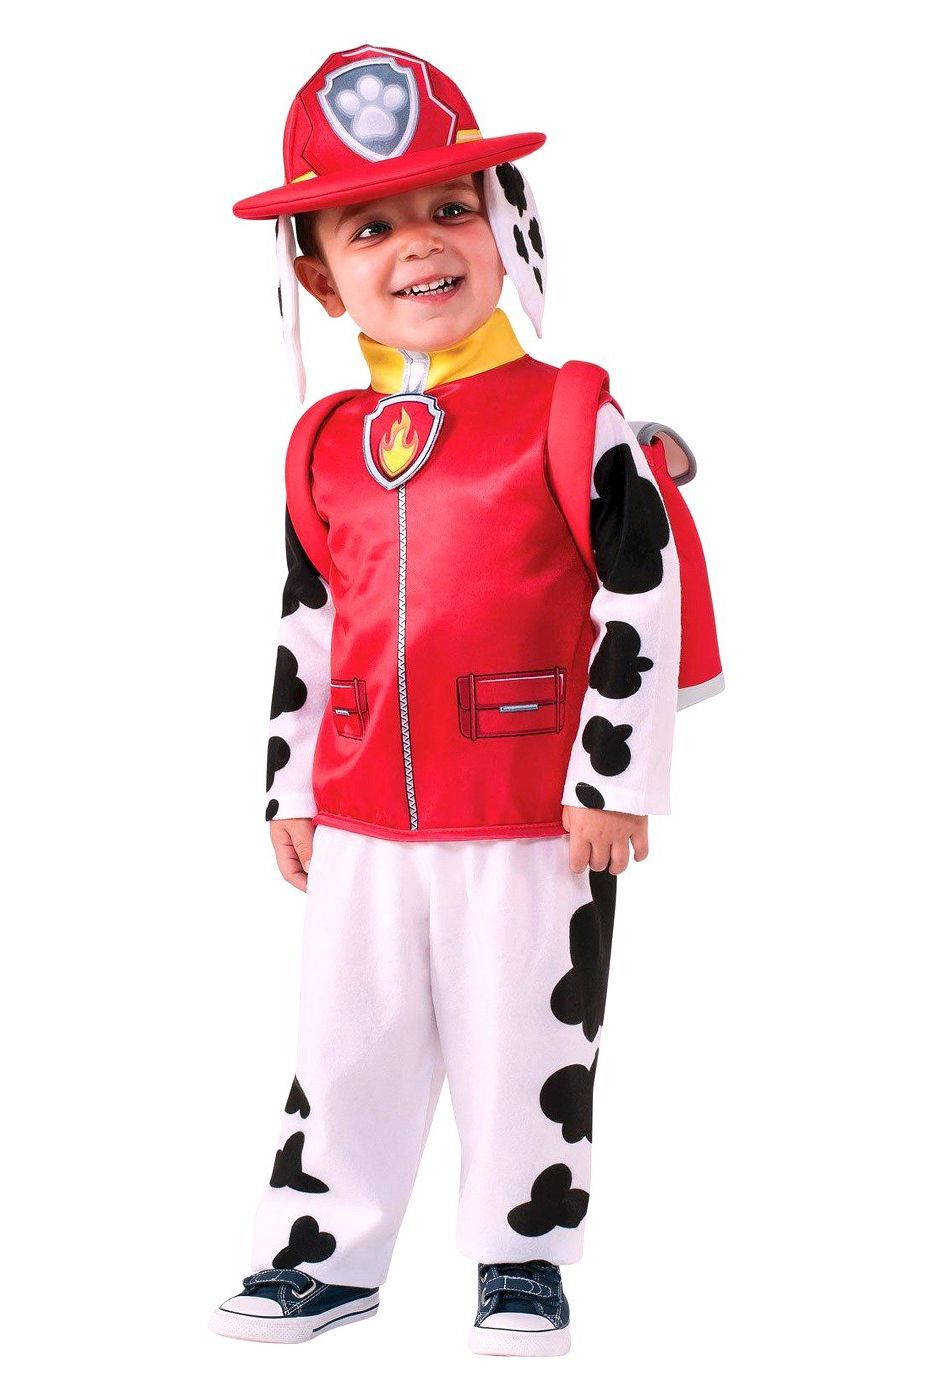 20 Best Toddler Halloween Costume Ideas 2018 Cute Halloween Costumes For Infants